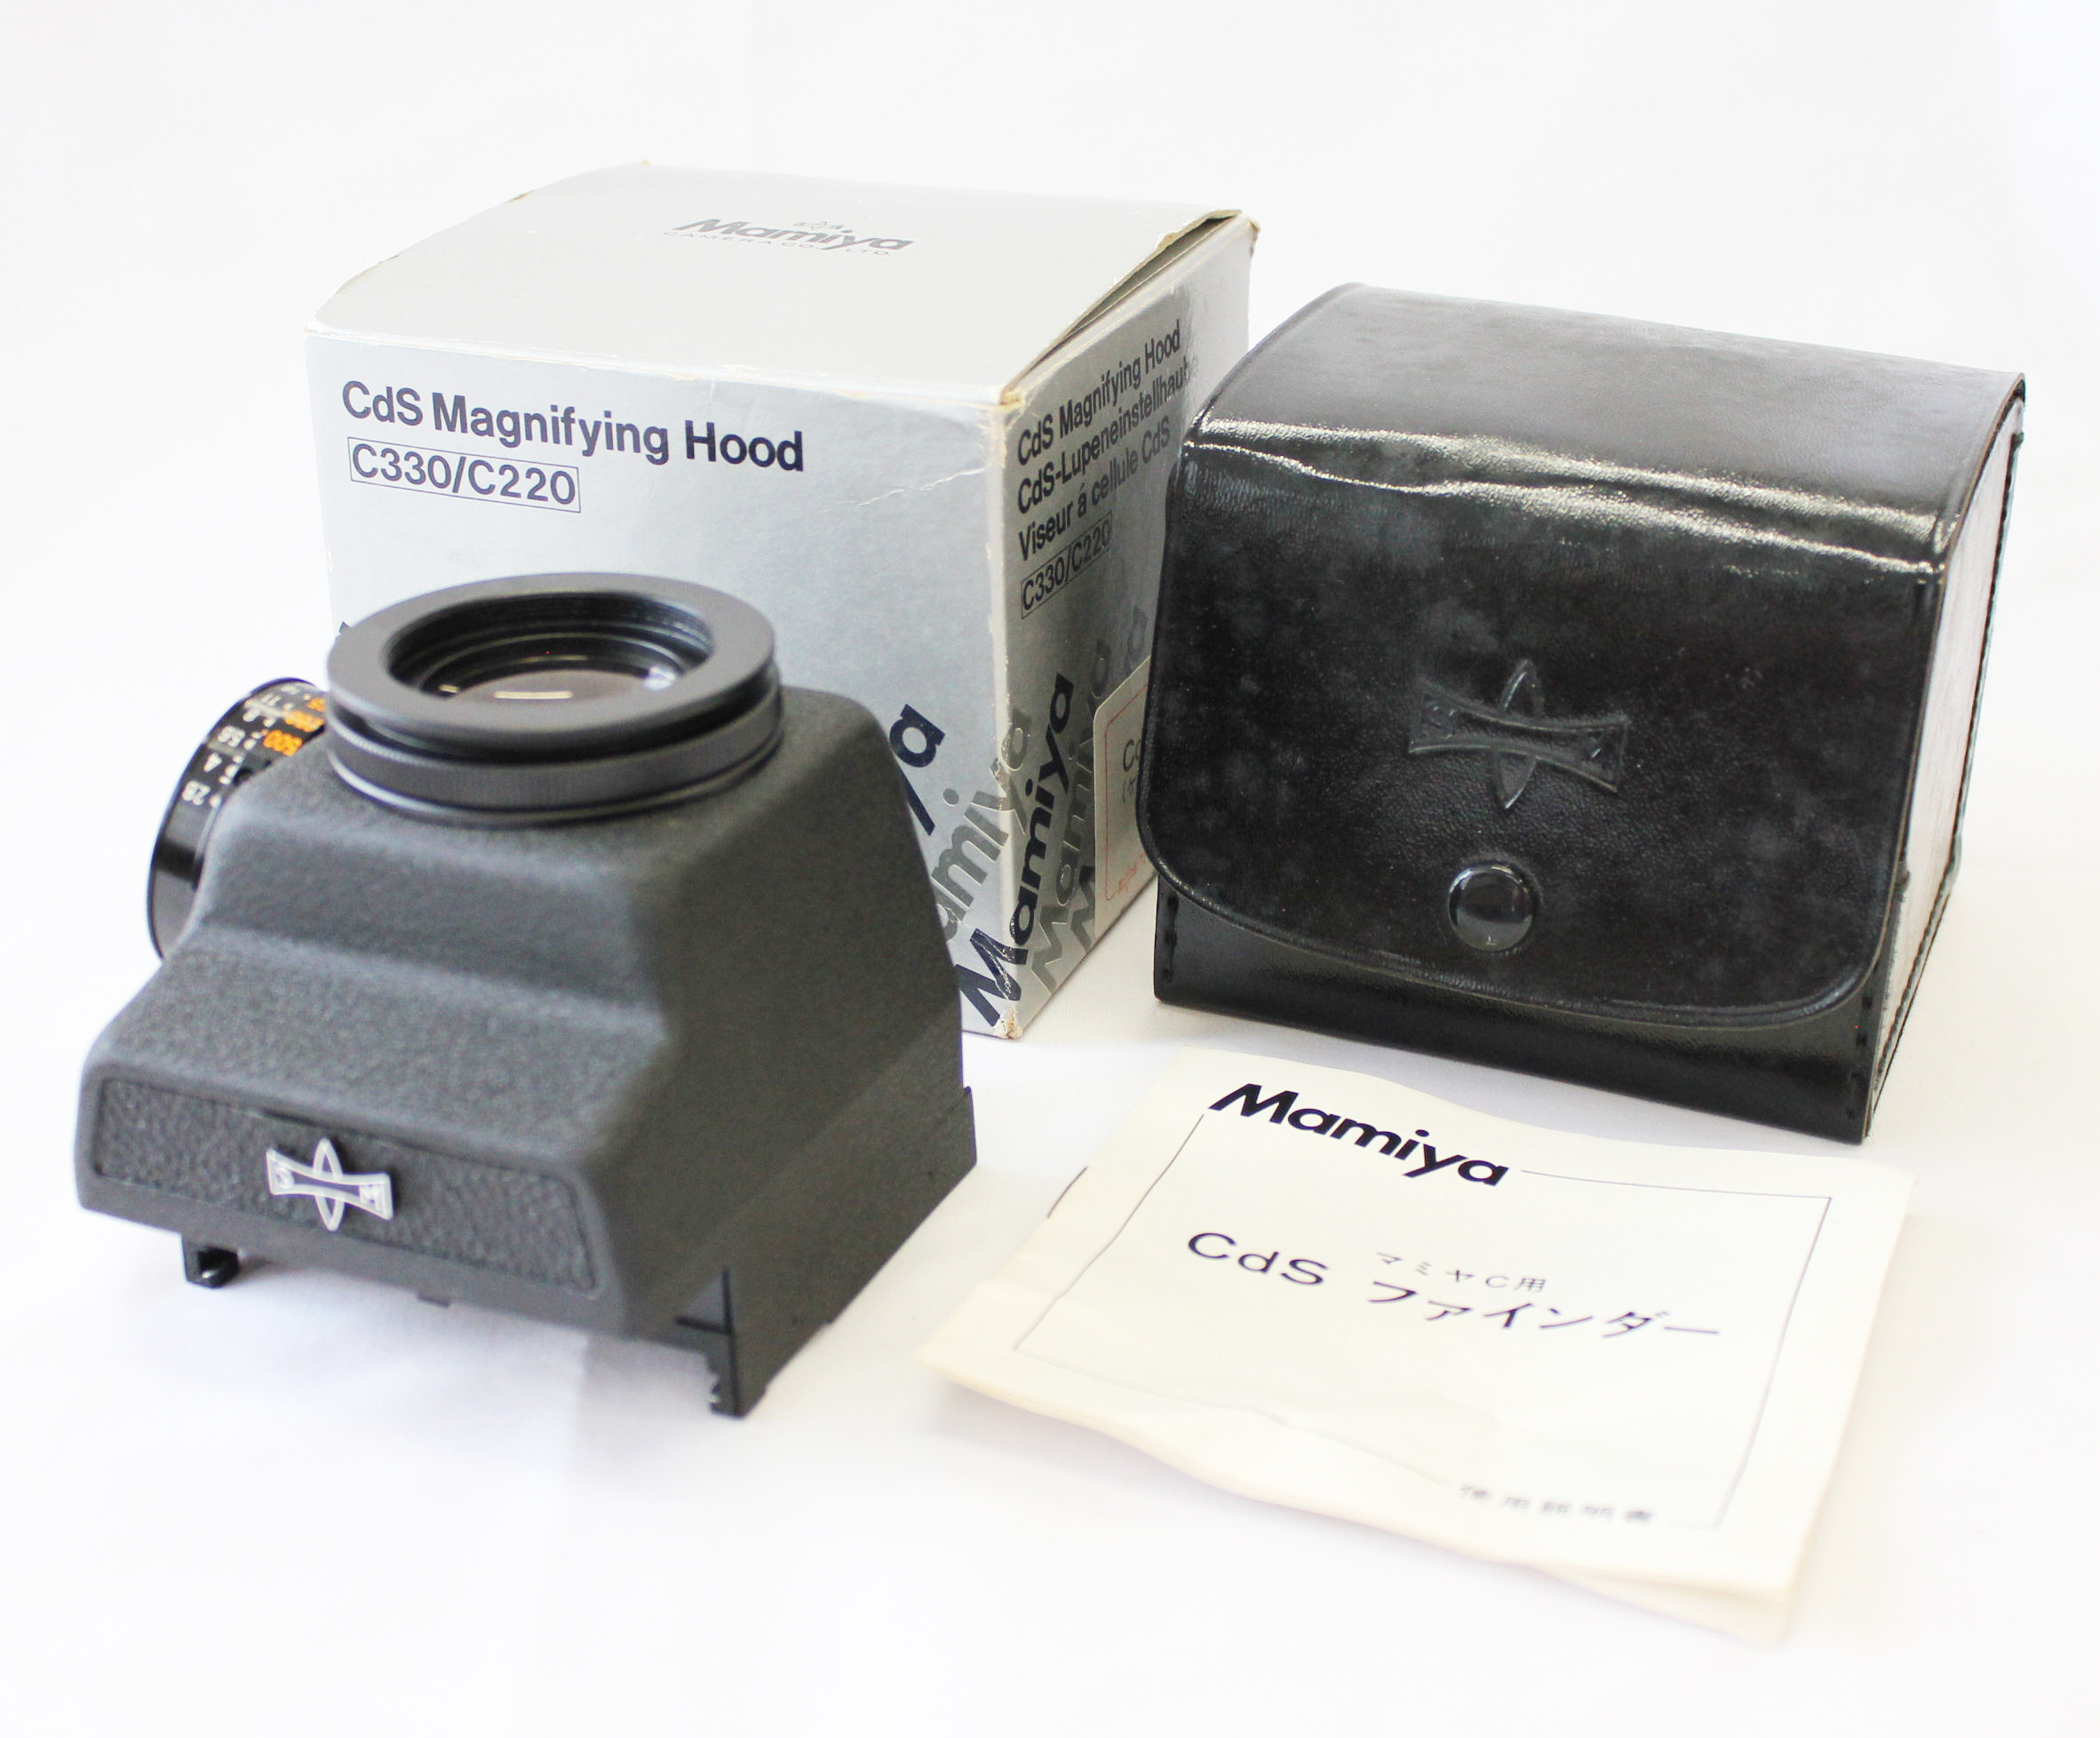 Japan Used Camera Shop | Mamiya CdS Magnifying Hood Finder for C330 C220 TLR with Case from Japan